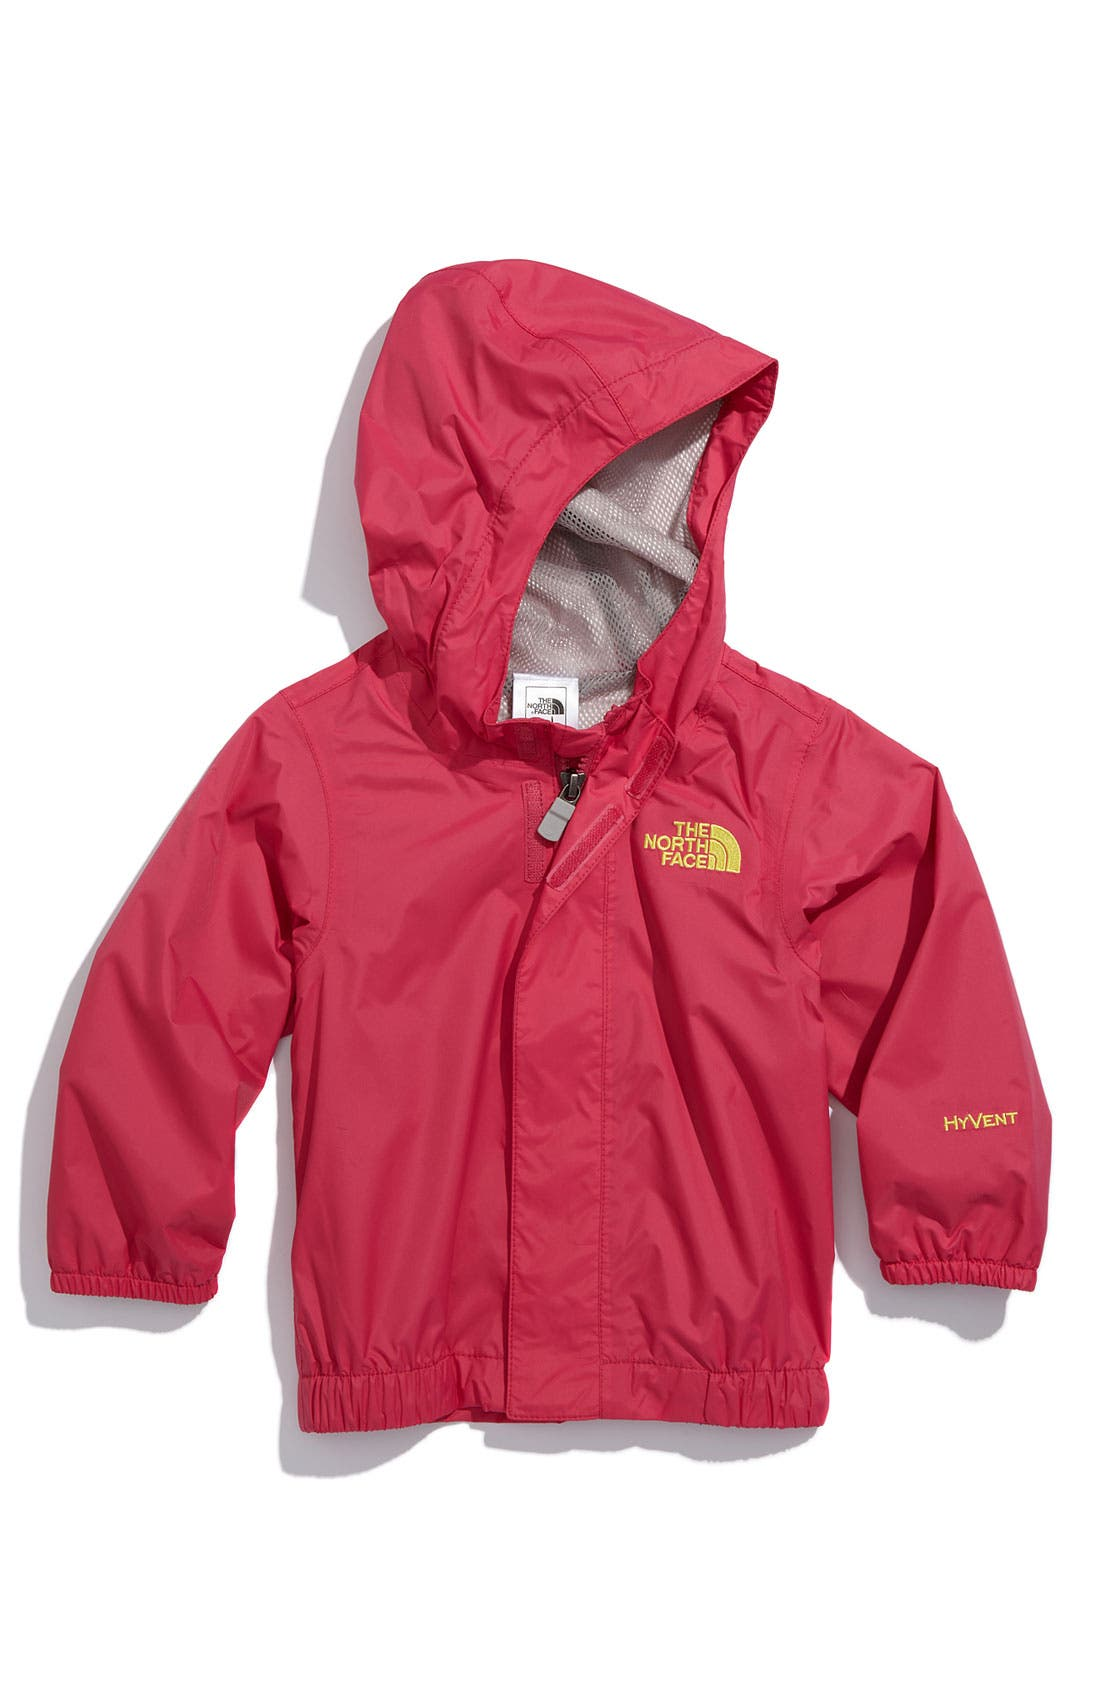 THE NORTH FACE 'Tailout' Rain Jacket, Main, color, 650